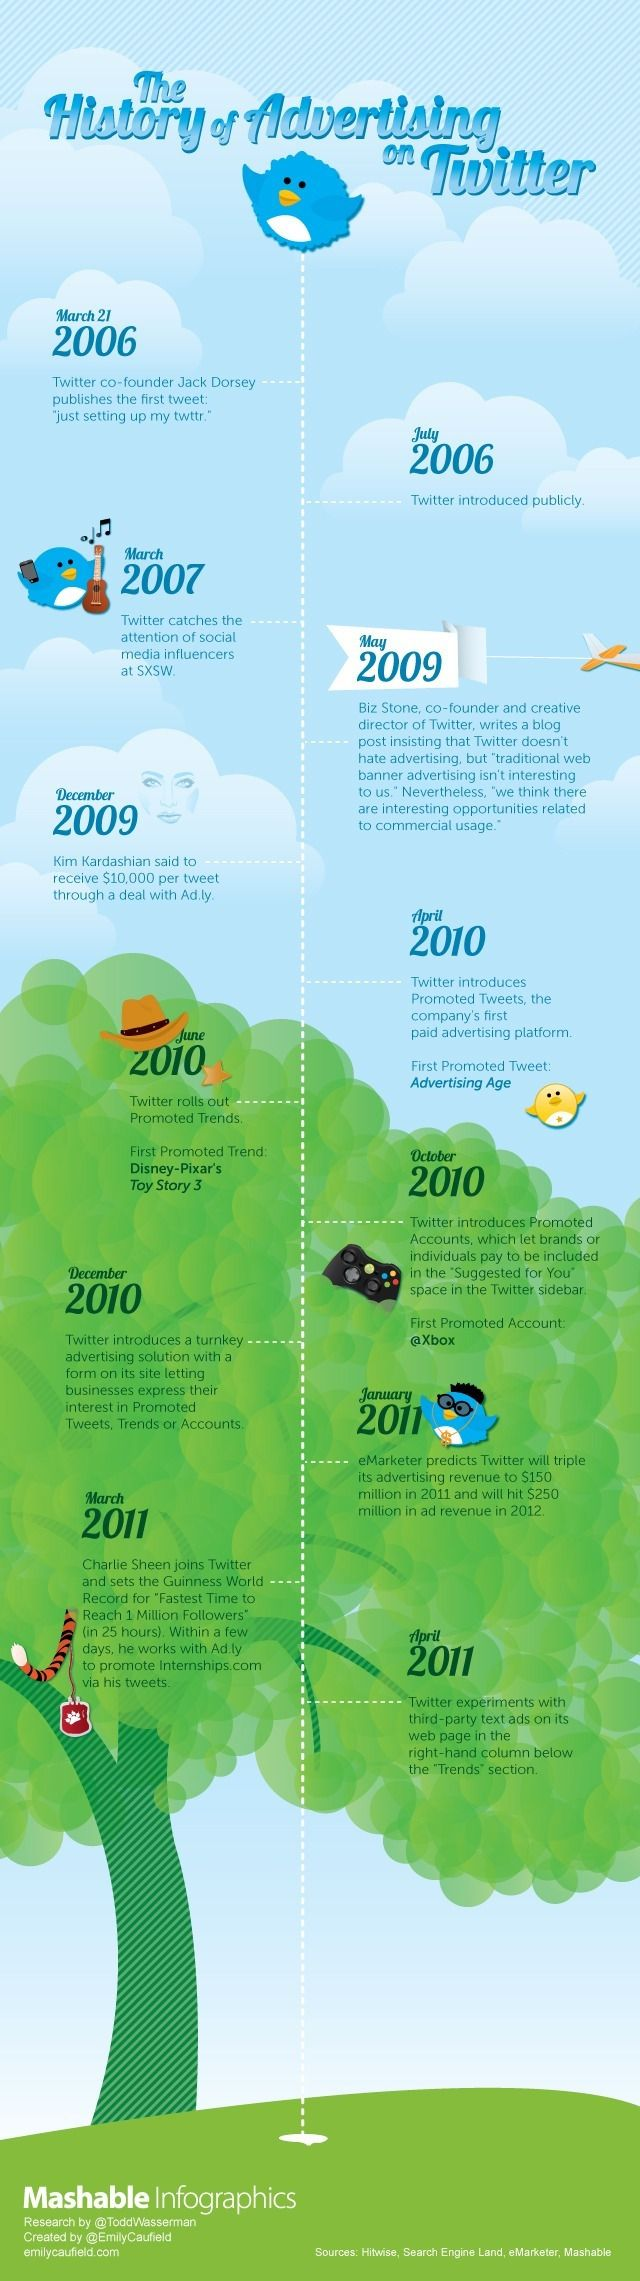 Mashable_History_of_Twitter_Advertising_Infographic